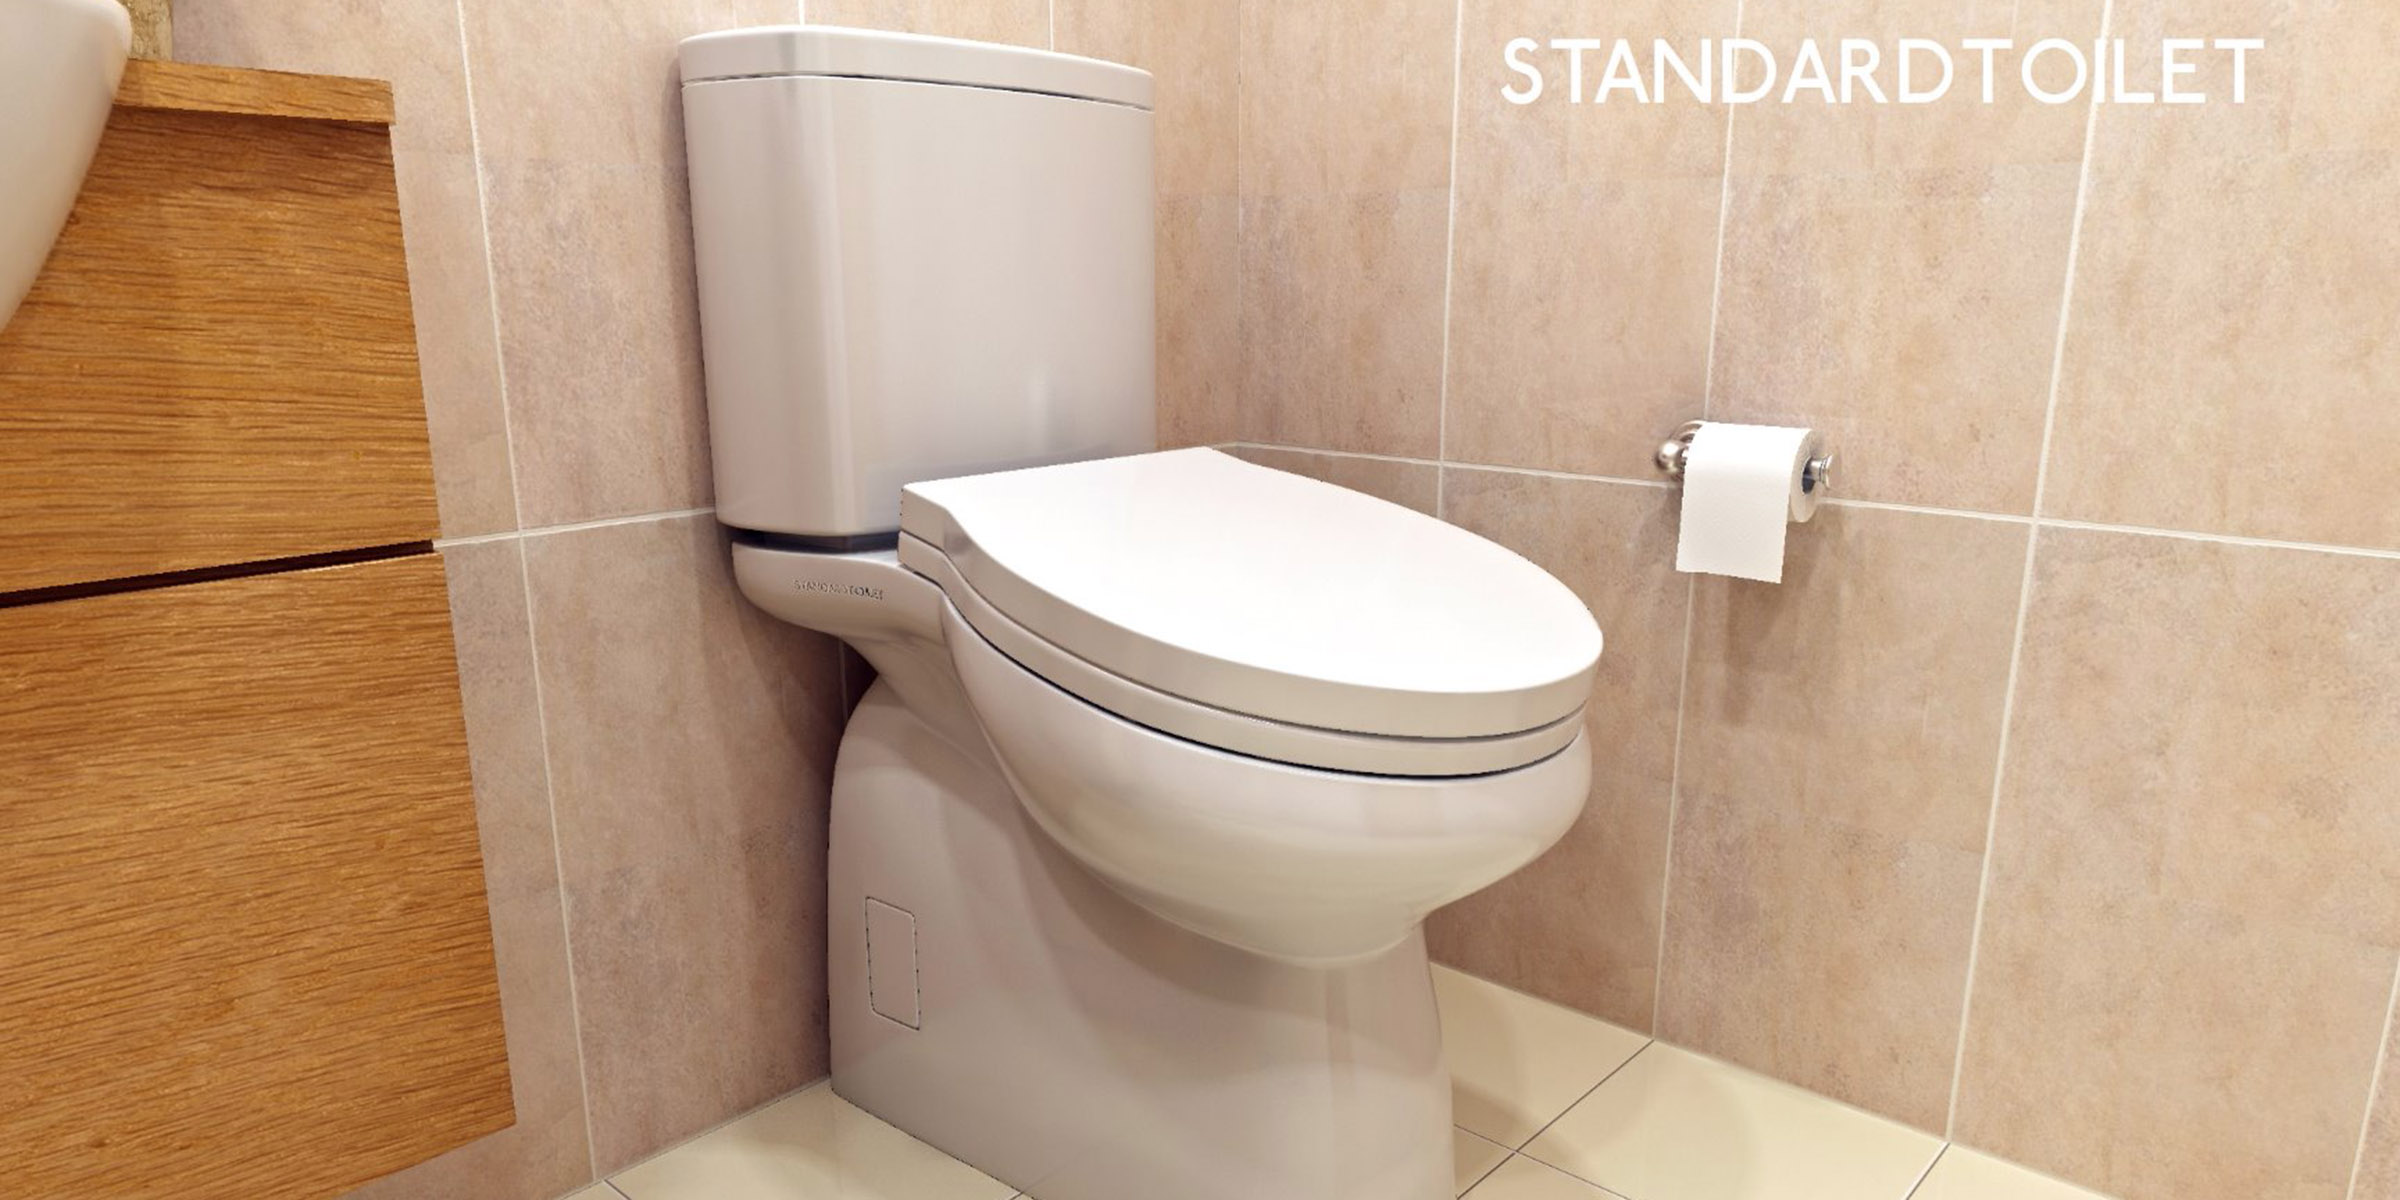 New Toilet Design Aims To Cut Time In The Bathroom